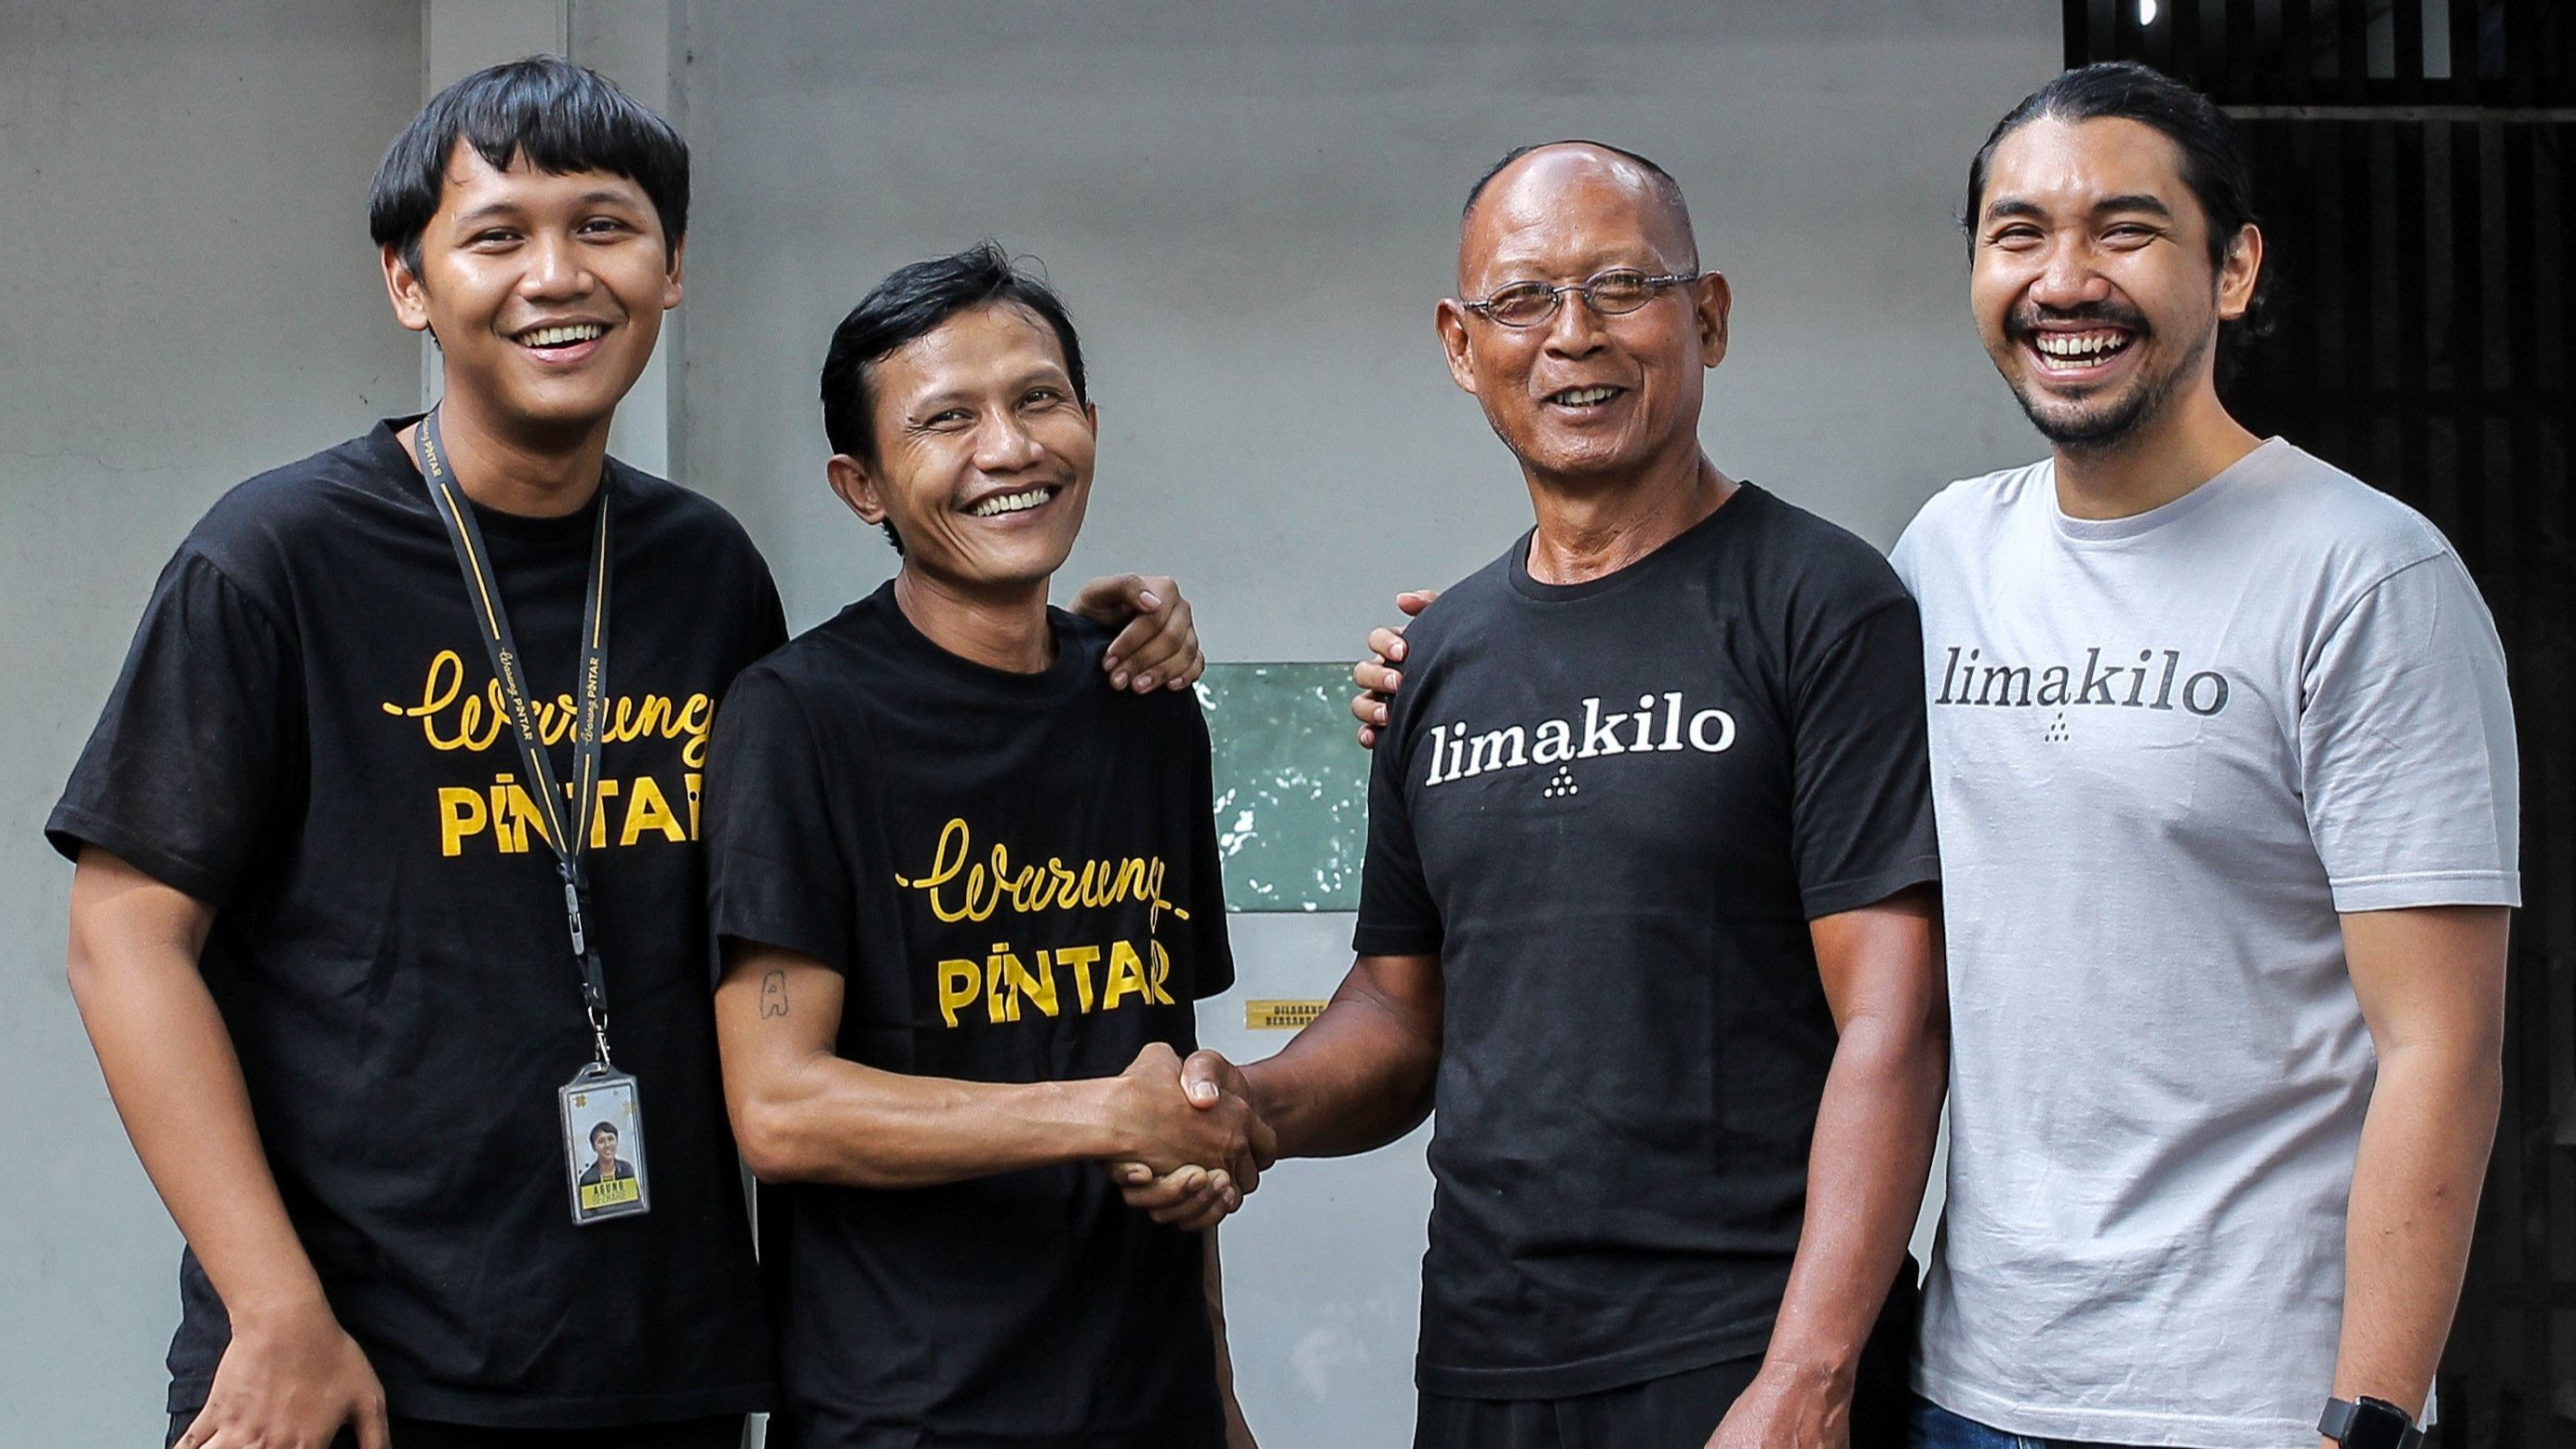 Indonesian Retail Tech Startup Warung Pintar Acquires Limakilo